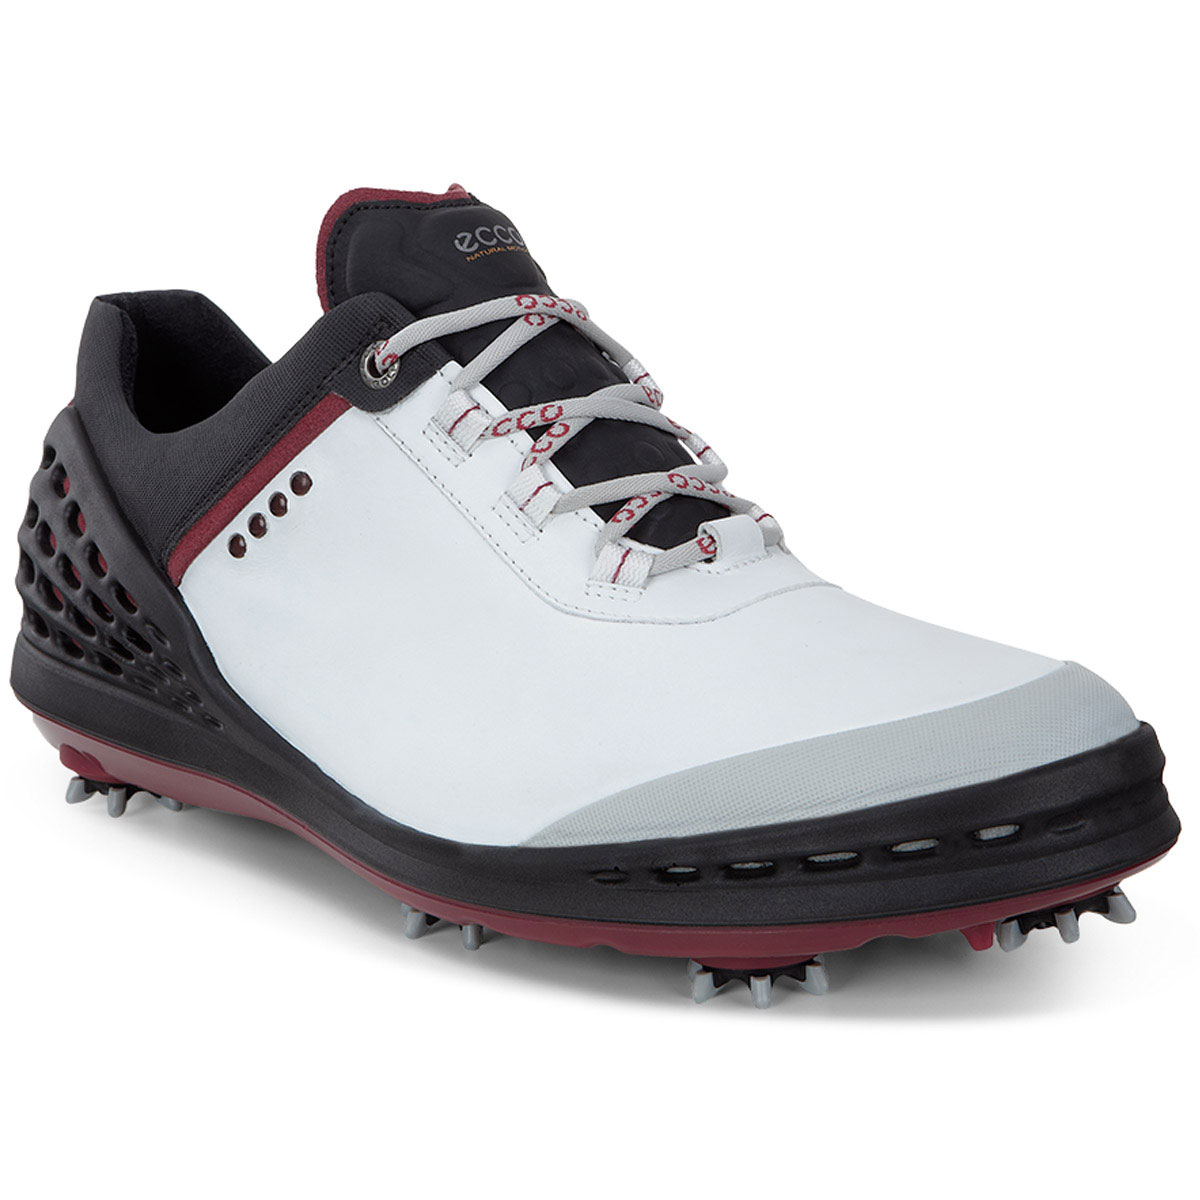 Ecco Golf Shoes Size